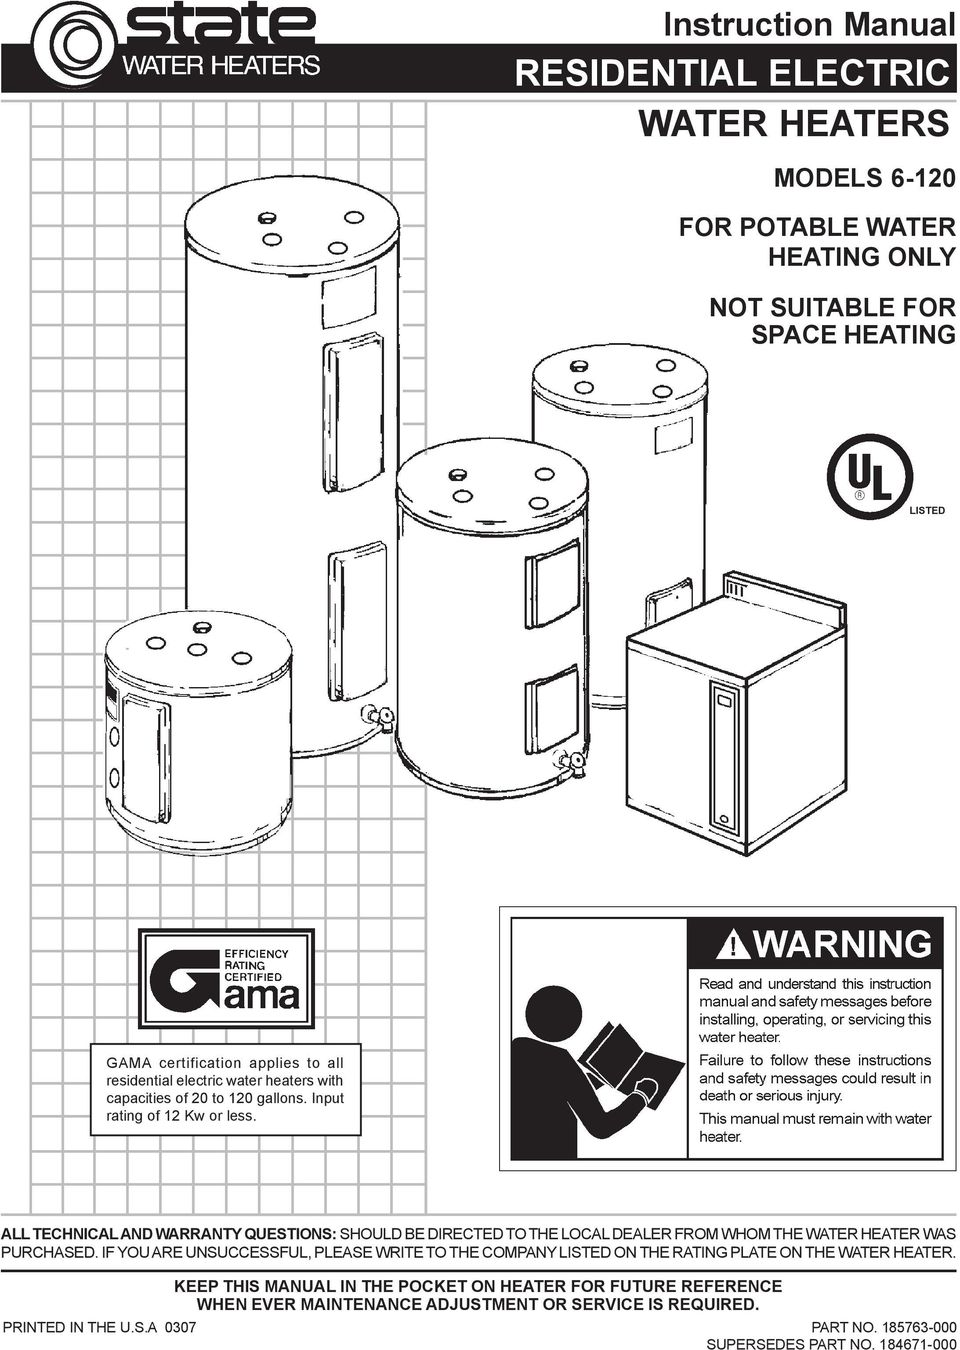 Electric Hot Water Heater Water Heater Wiring Diagram